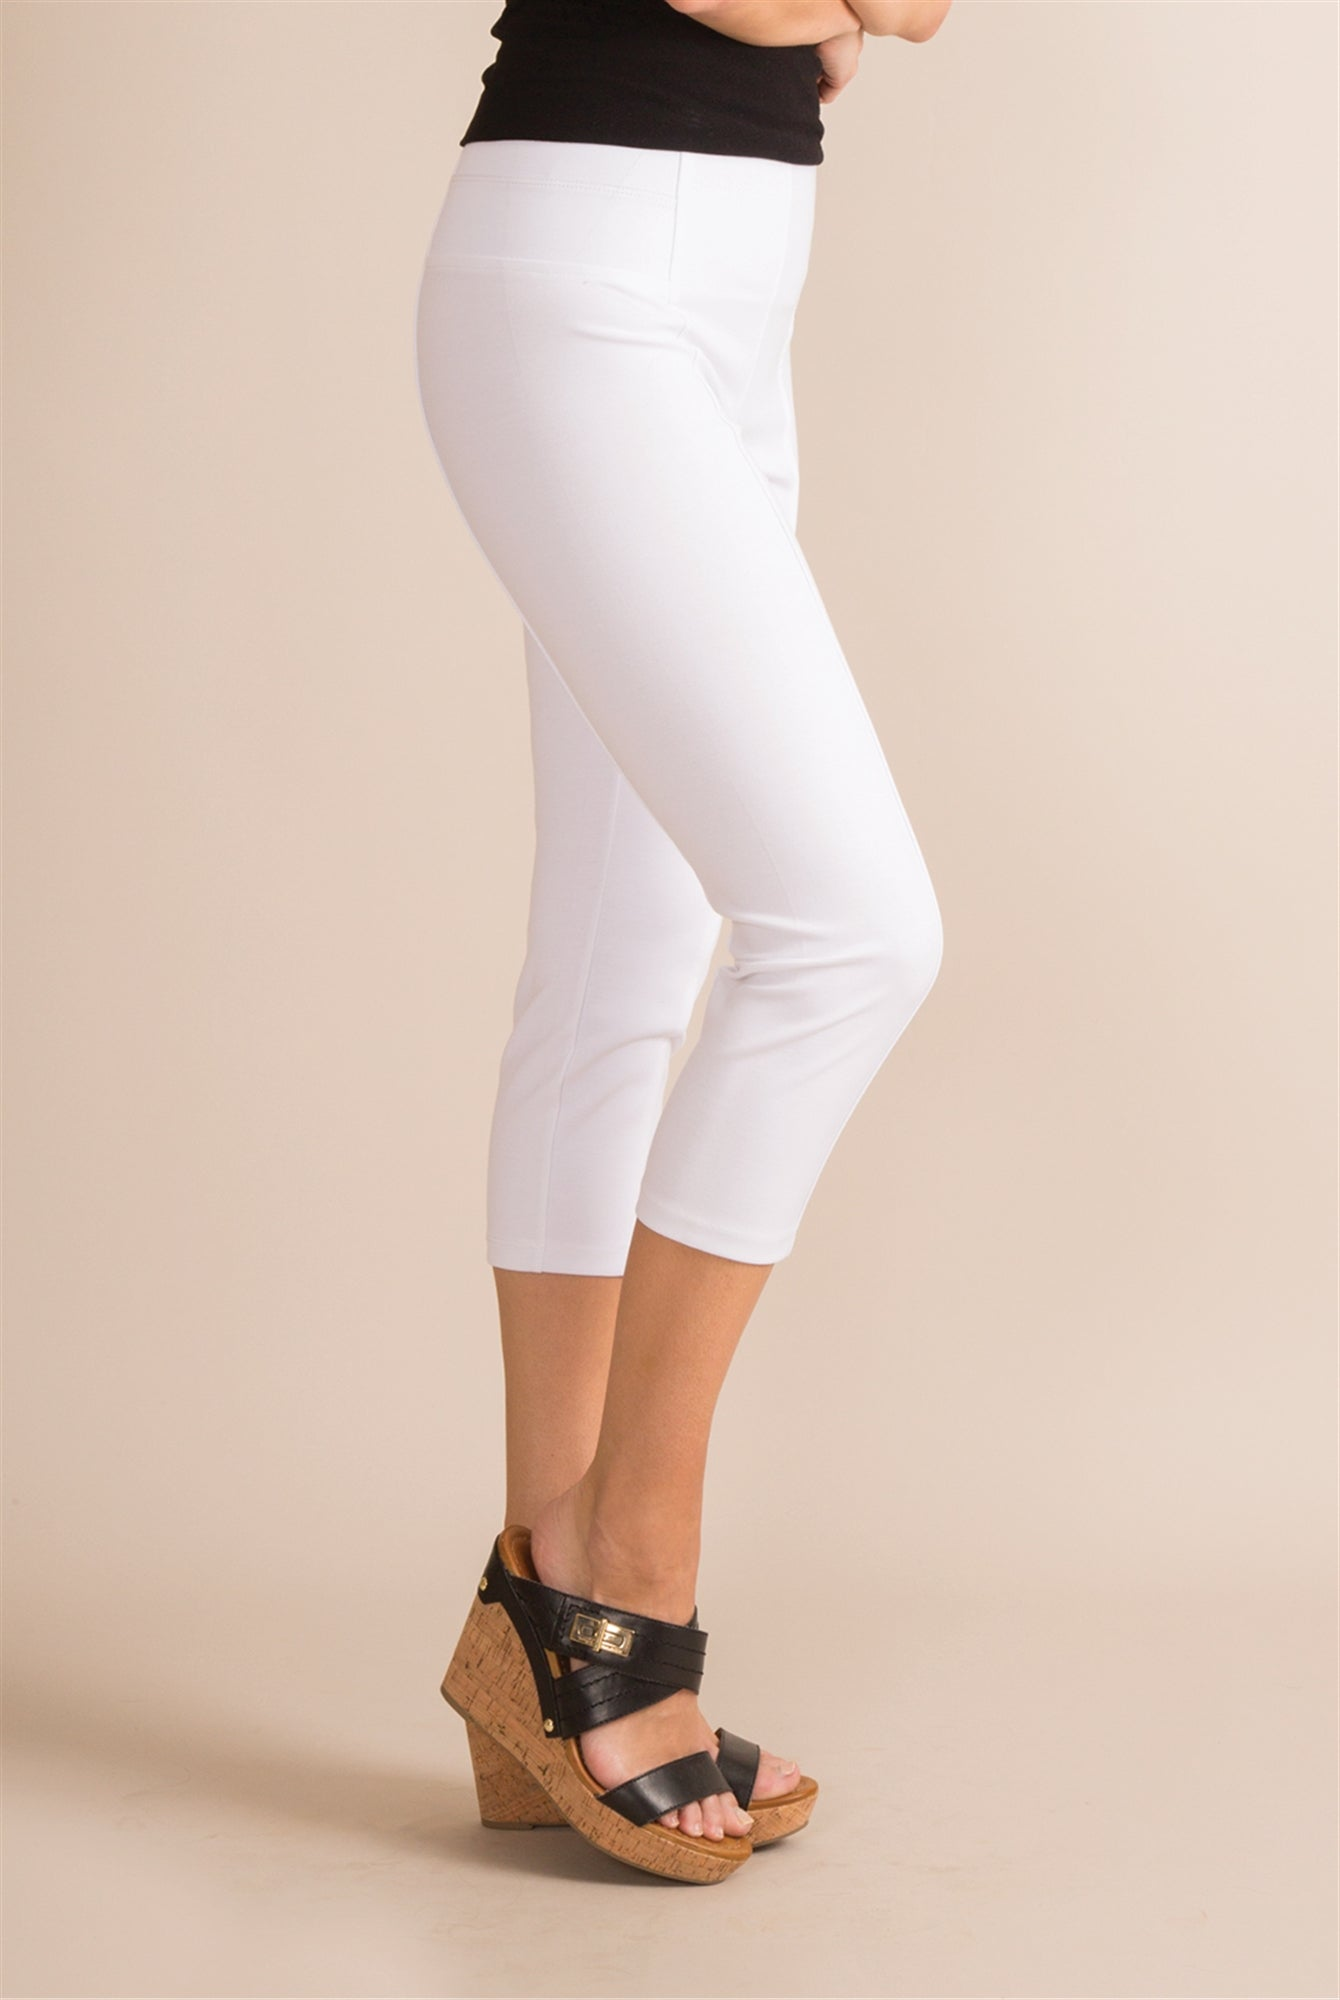 Ponte Cropped White Pant - FrouFrou Couture